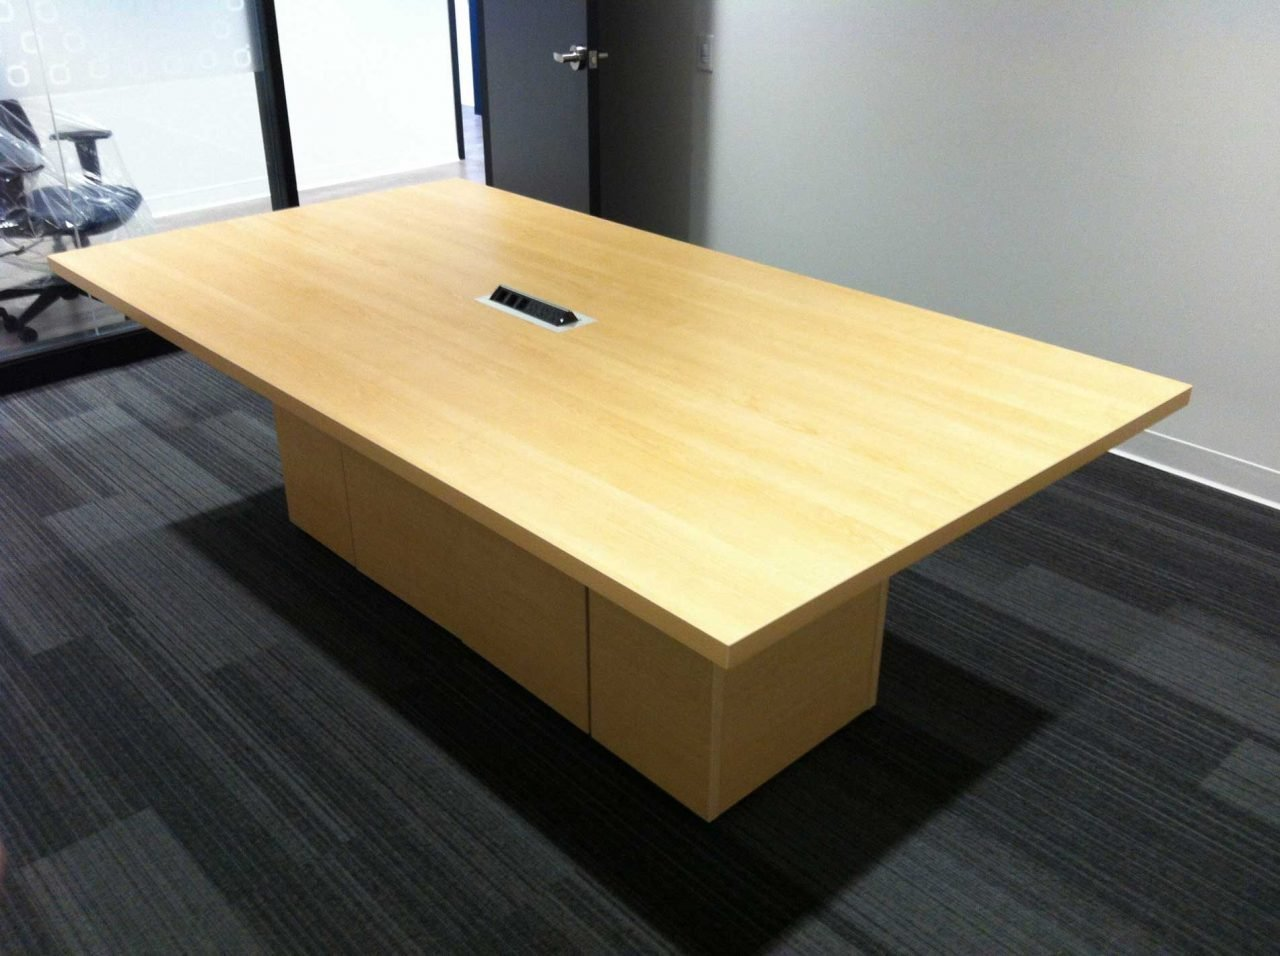 Meeting Table with box in an empty room